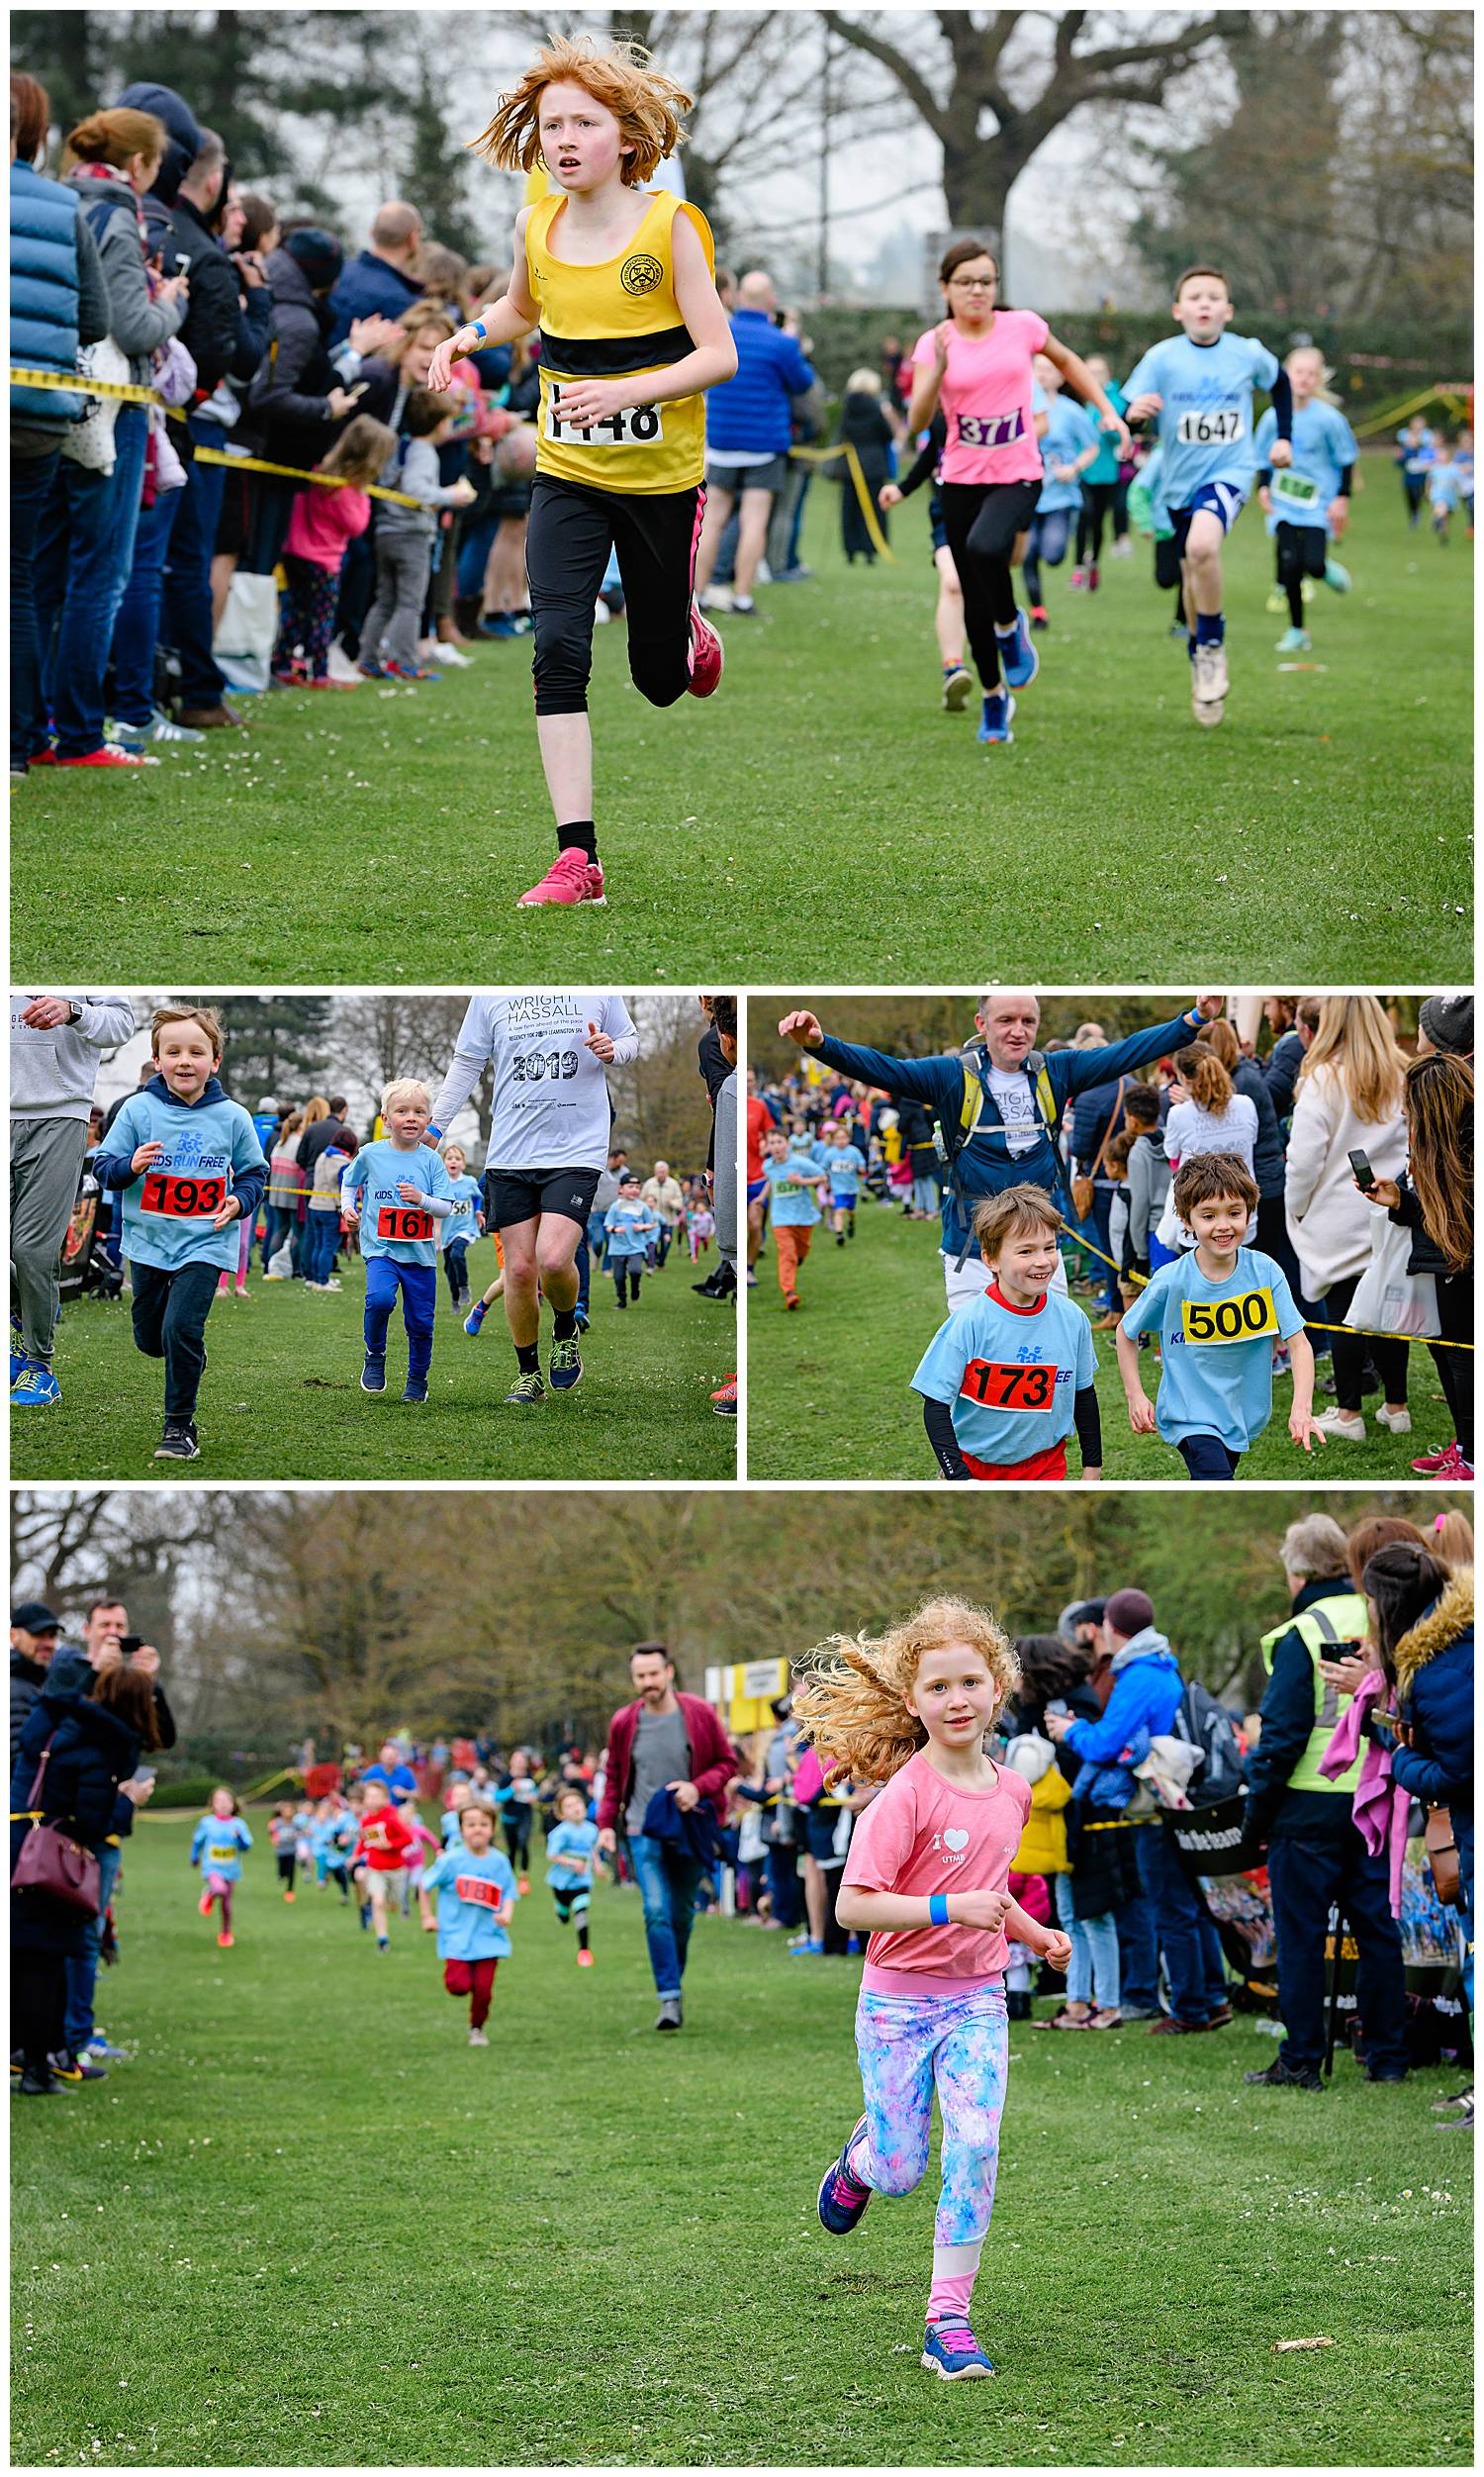 Montage of images of children racing to the finish line of a 1k fun run